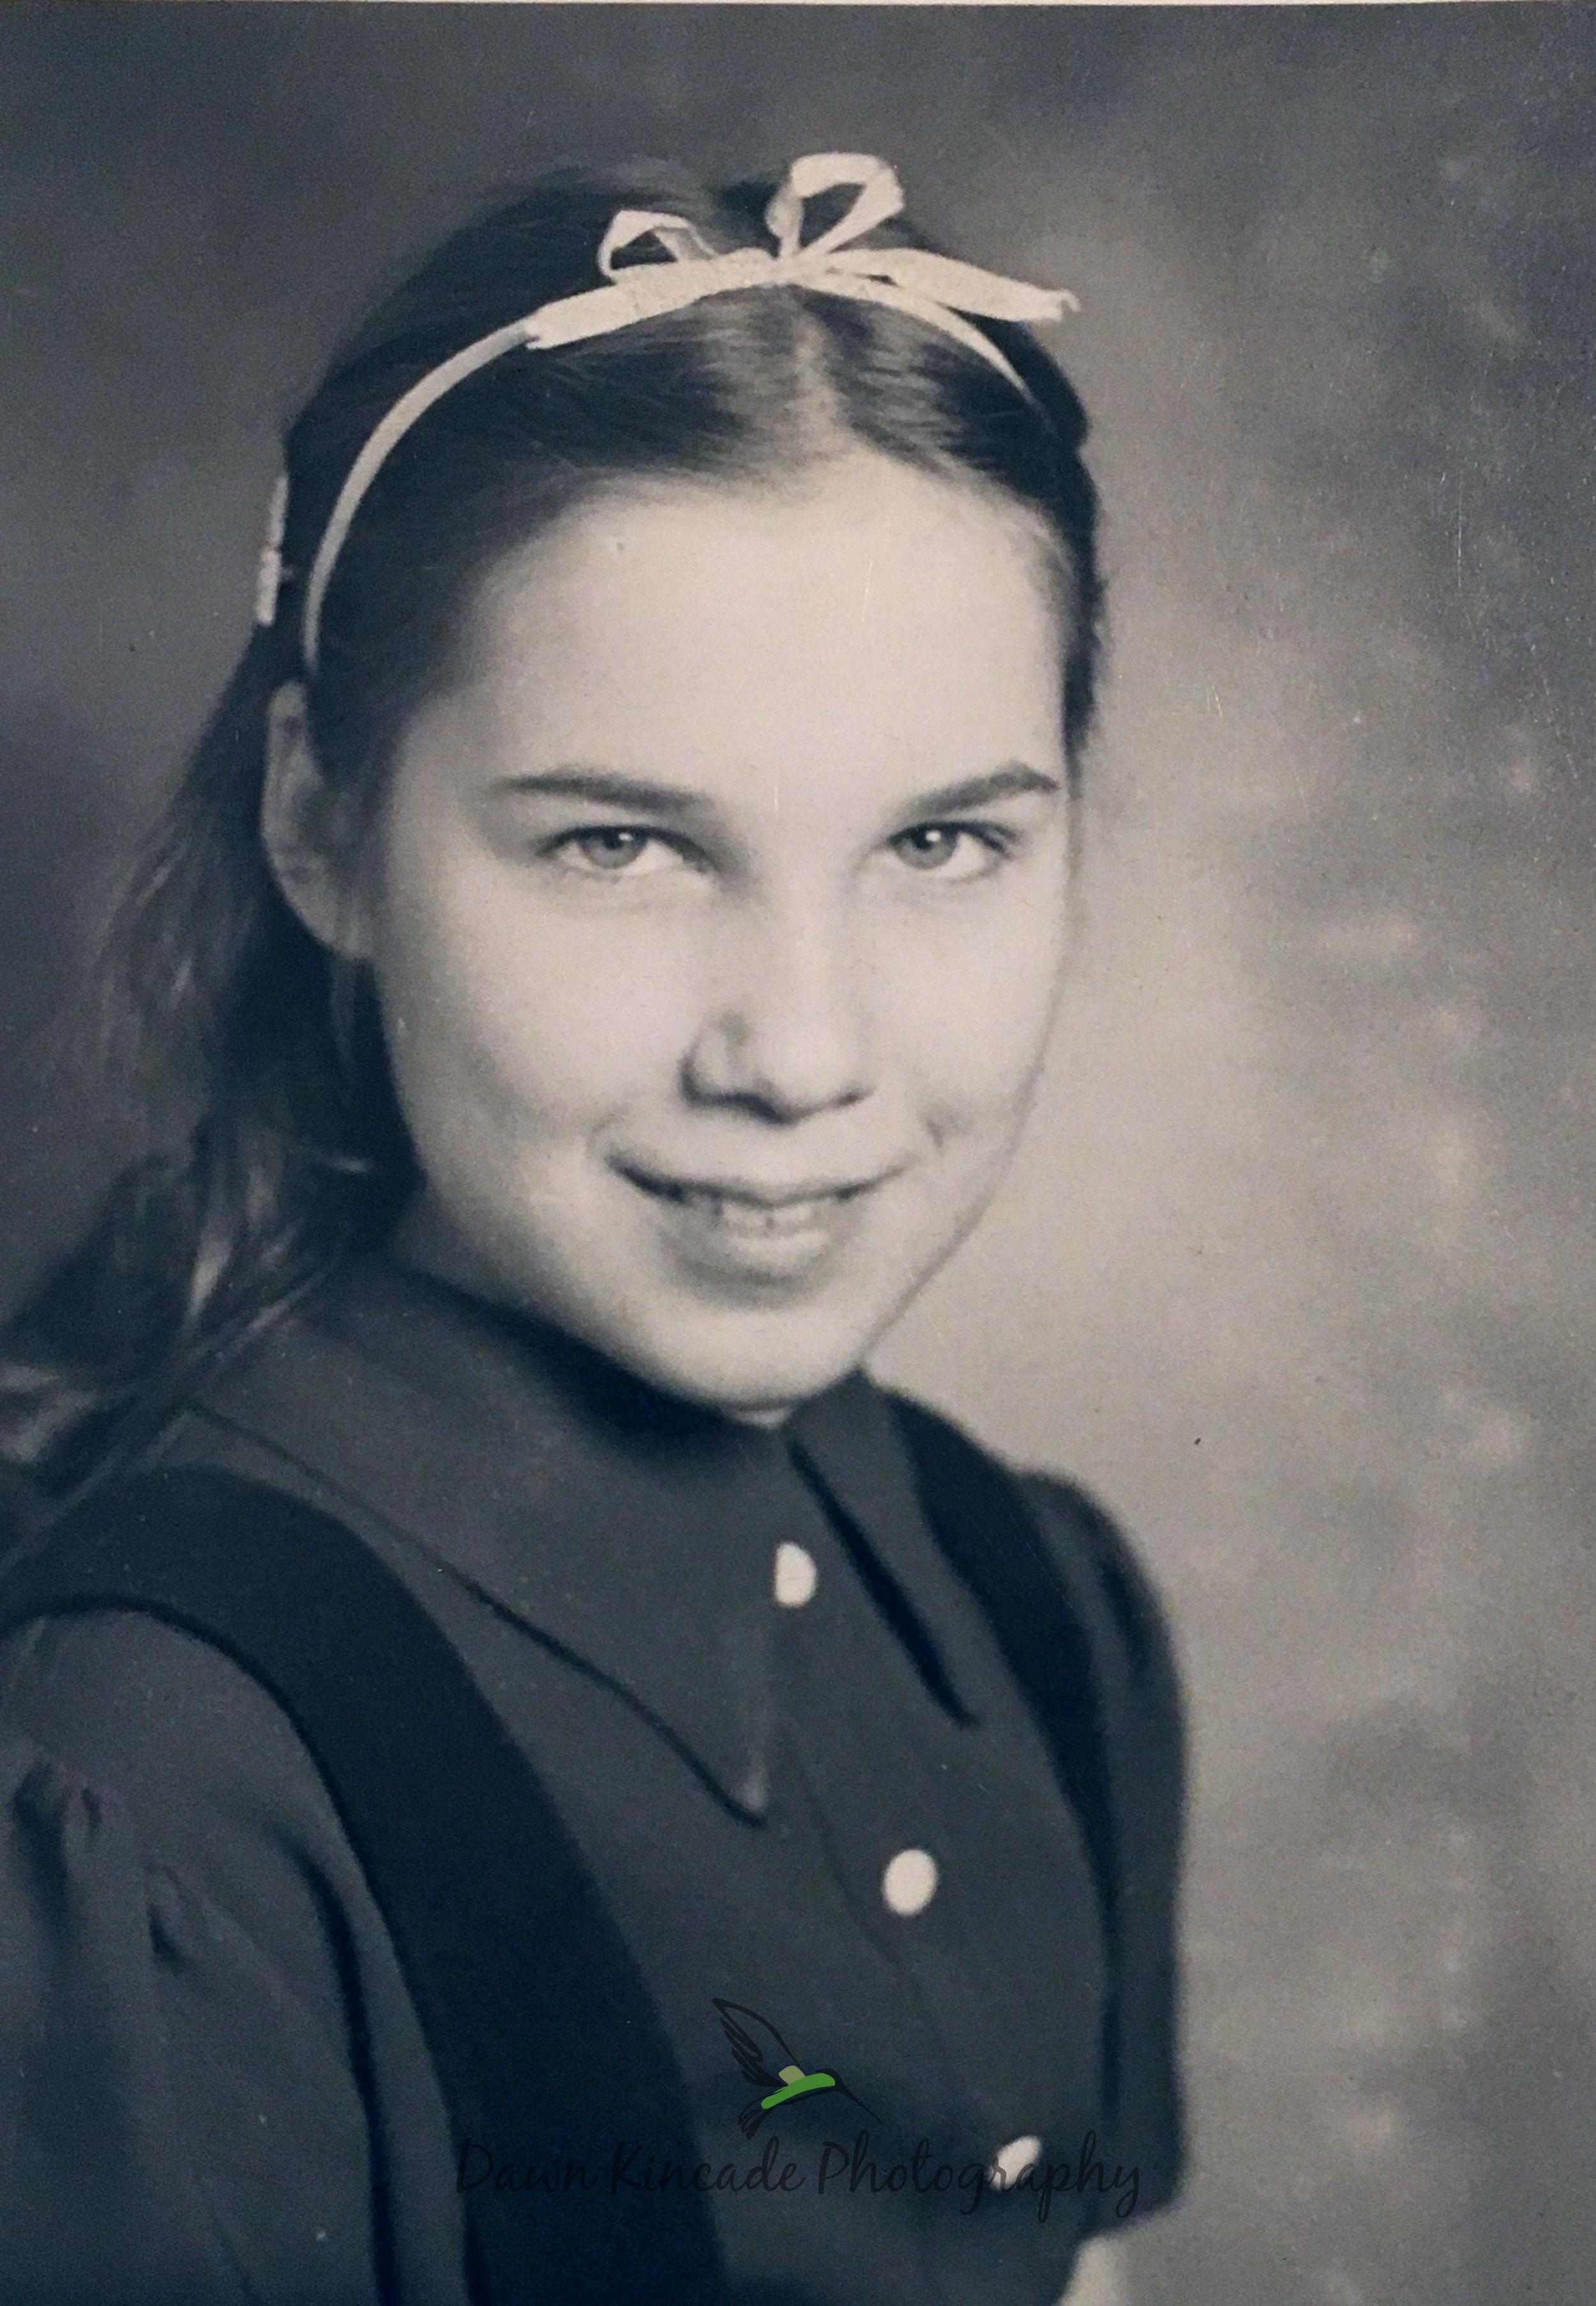 My Mom as a young girl. This is not a photo that I took. This is a scanned copy of an original that photo.